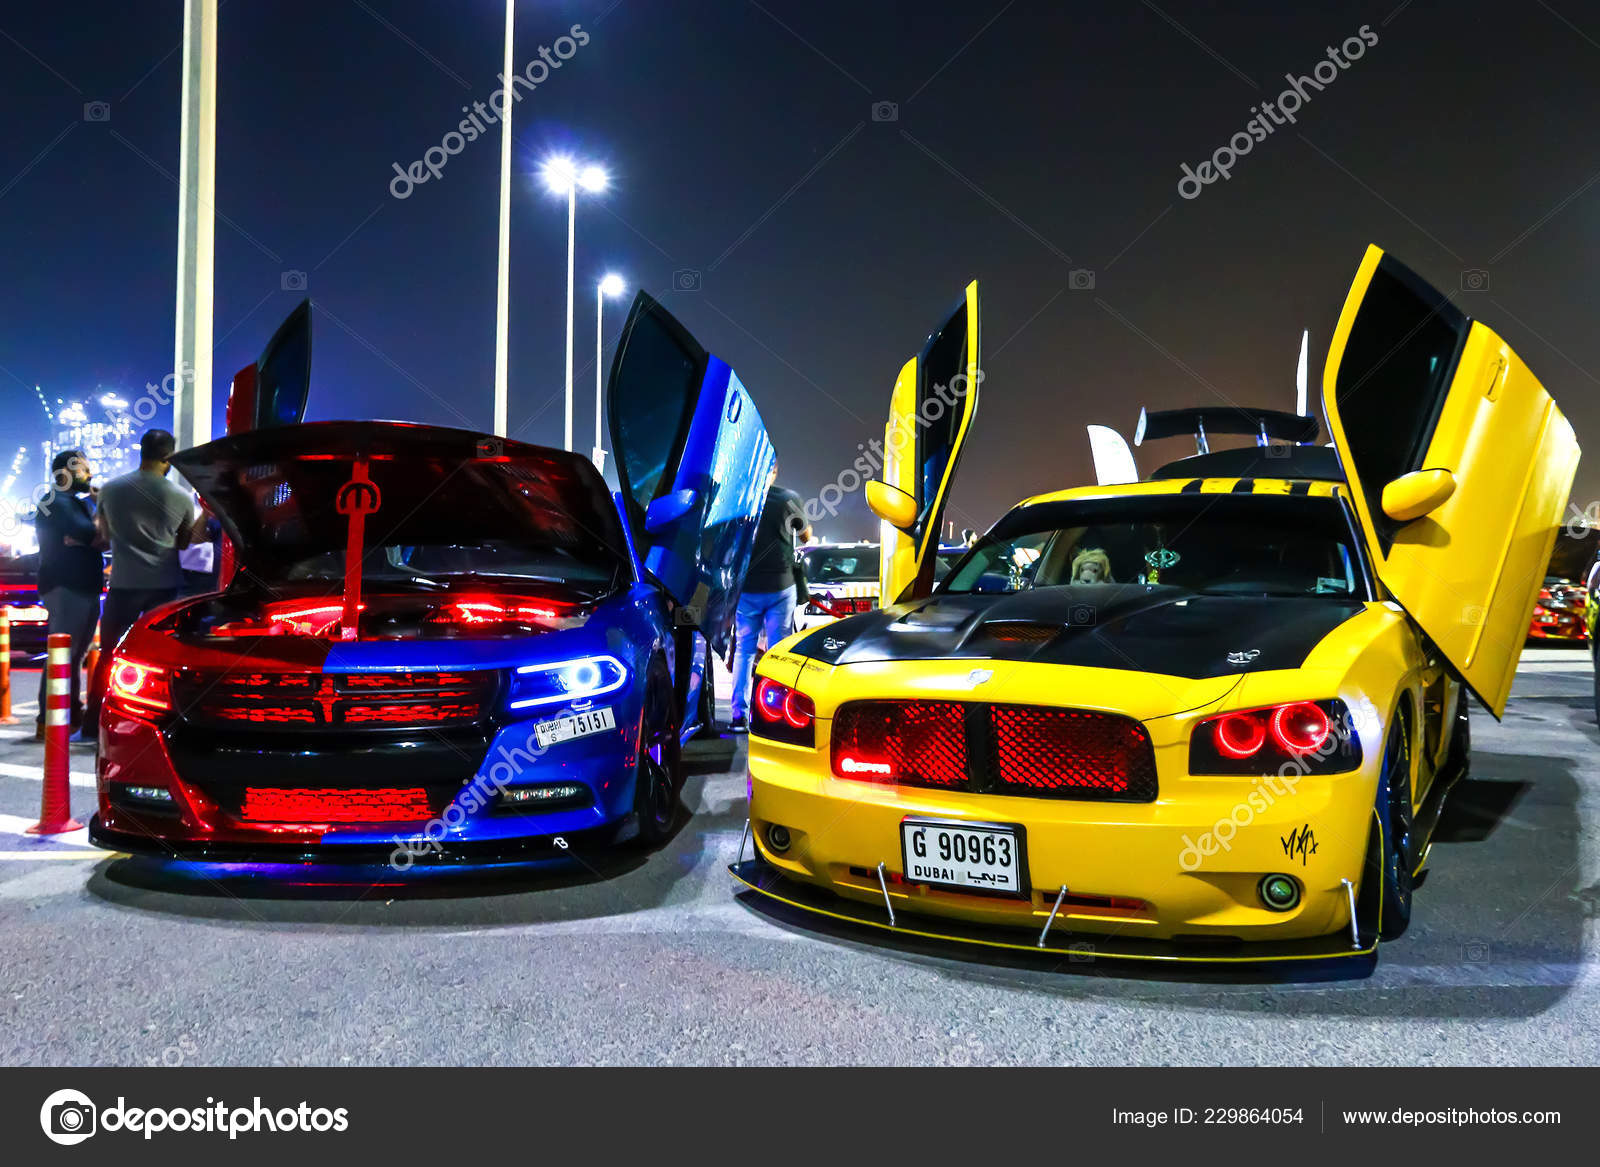 Dubai Uae November 2018 Customized Motor Cars Dodge Charger Takes Stock Editorial Photo C Artzzz 229864054